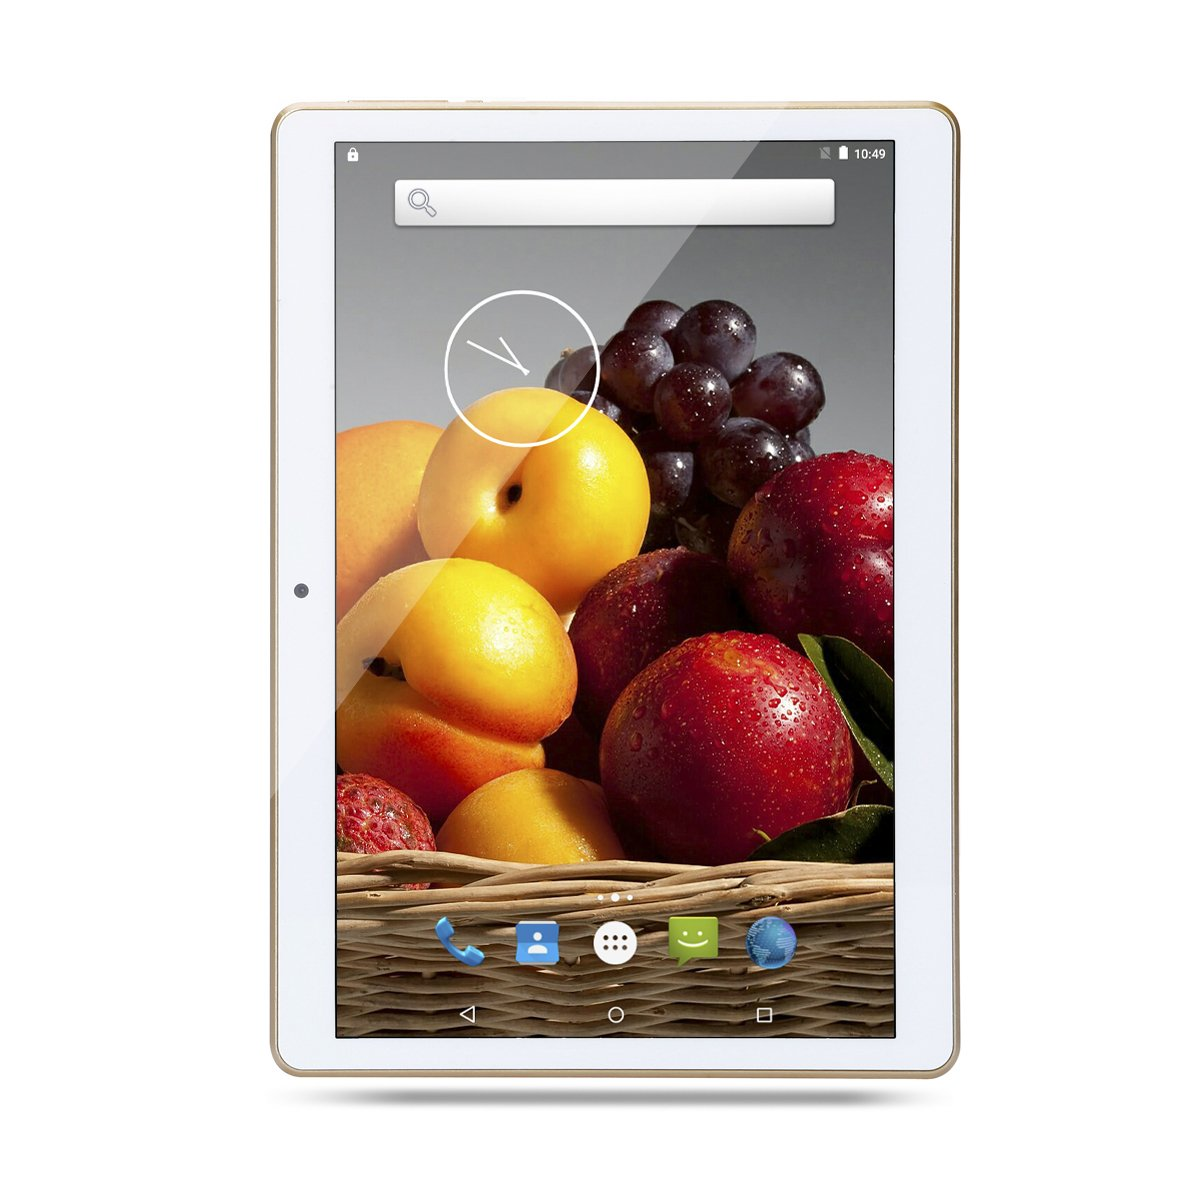 Bestenme 10 inch Tablet PC Octa Core 1280X800 IPS Bluetooth RAM 4GB ROM 64GB 8.0MP 3G Dual sim Phone Android 5.1 Lollipop (White)